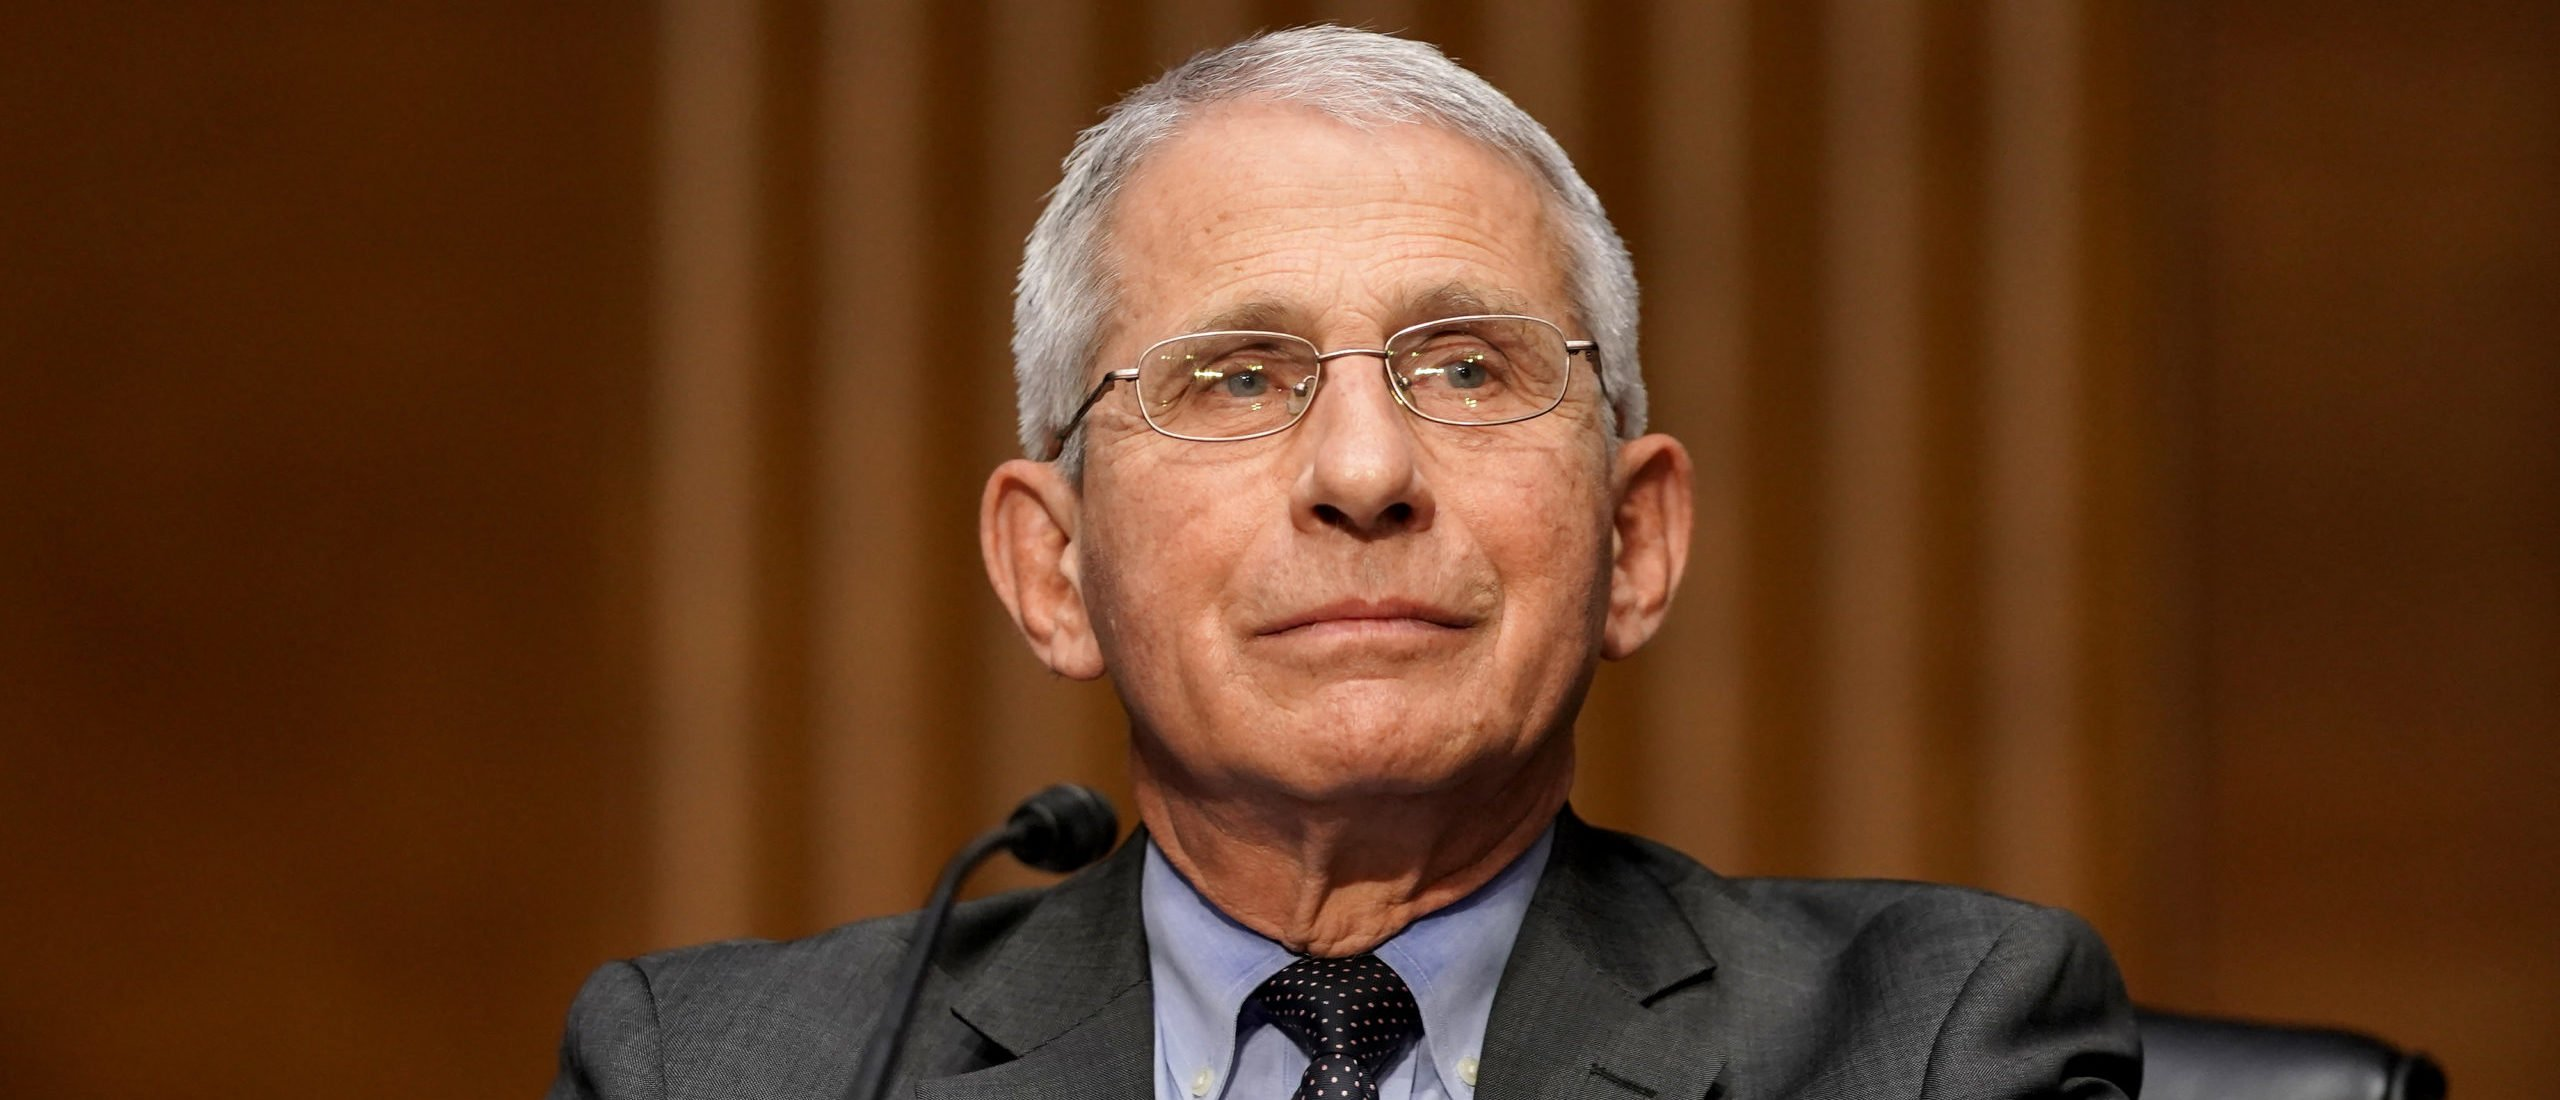 WASHINGTON, DC - MAY 11: Dr. Anthony Fauci, director of the National Institute of Allergy and Infectious Diseases, speaks during a Senate Health, Education, Labor and Pensions Committee hearing to discuss the ongoing federal response to COVID-19 on May 11, 2021 in Washington, DC. (Photo by Greg Nash-Pool/Getty Images)